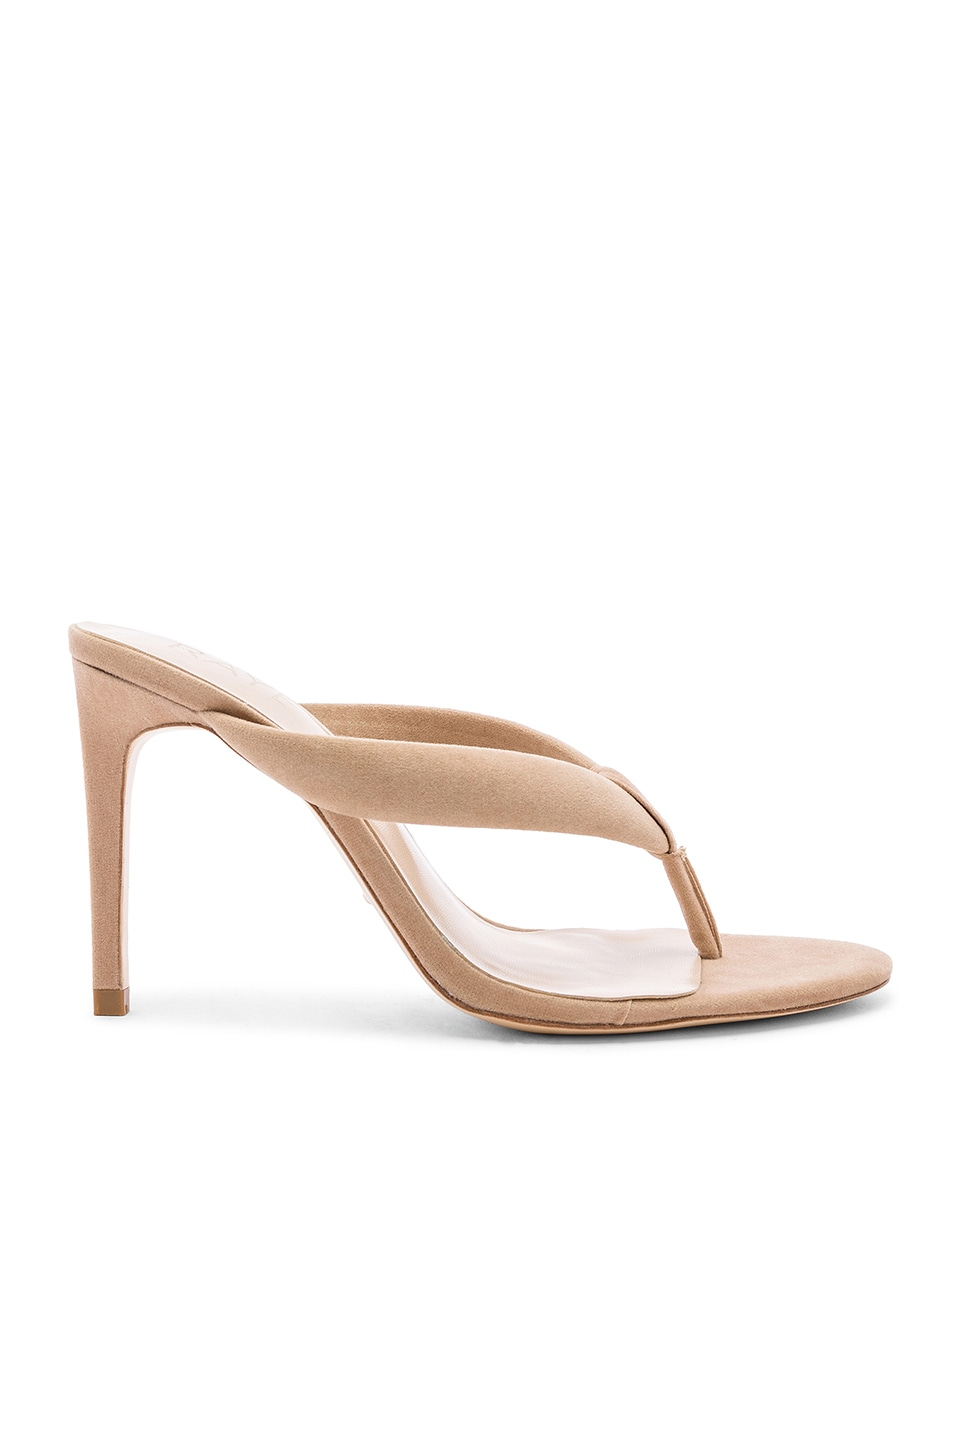 RAYE Katari Heel in Tan